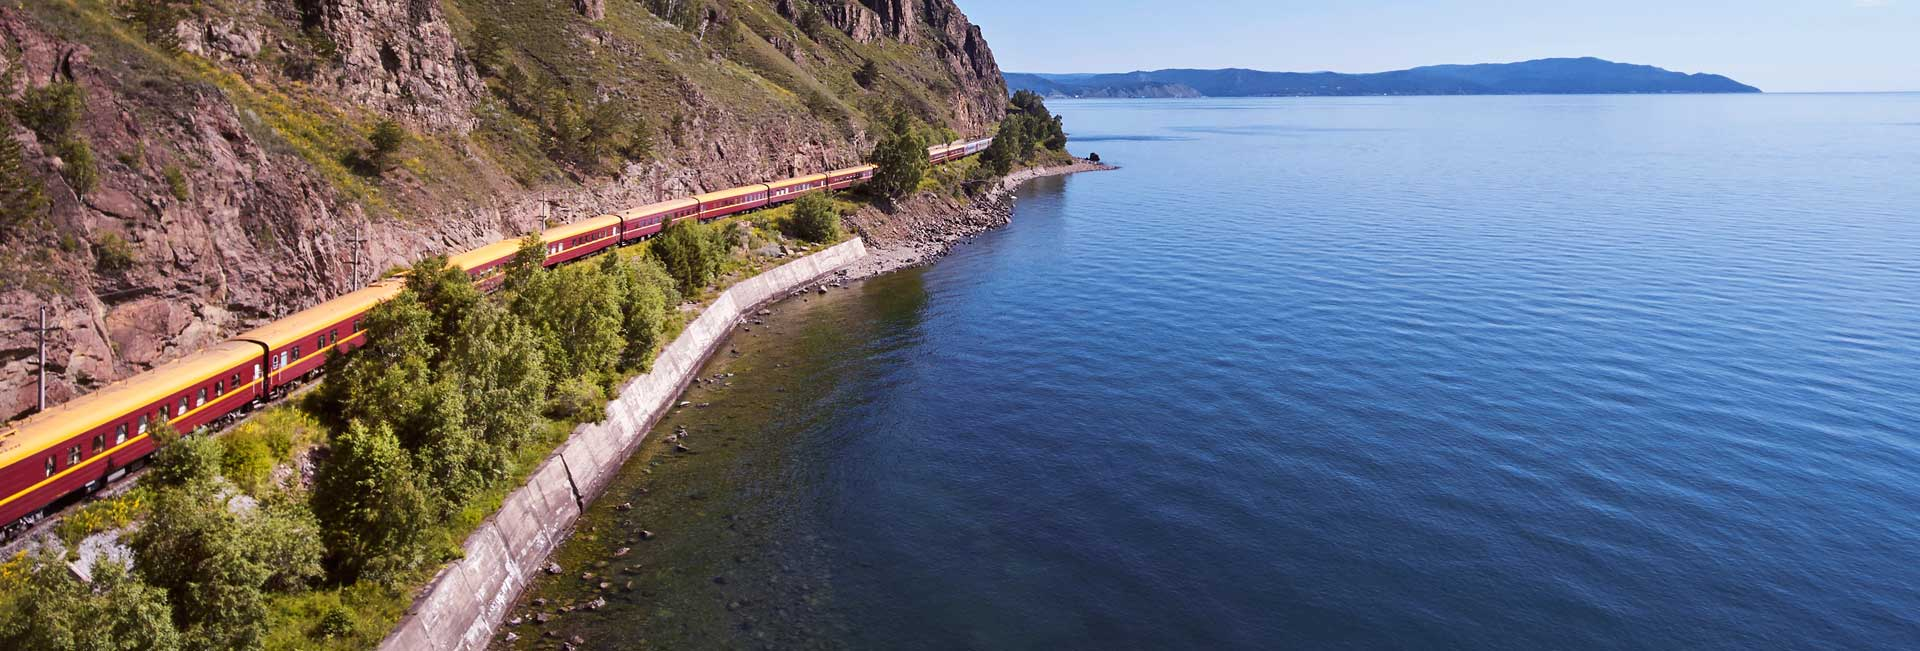 The Tsar's Gold Train rides the shores of Lake Baikal (Siberia, Russia). Photo credit: Ross Hillier